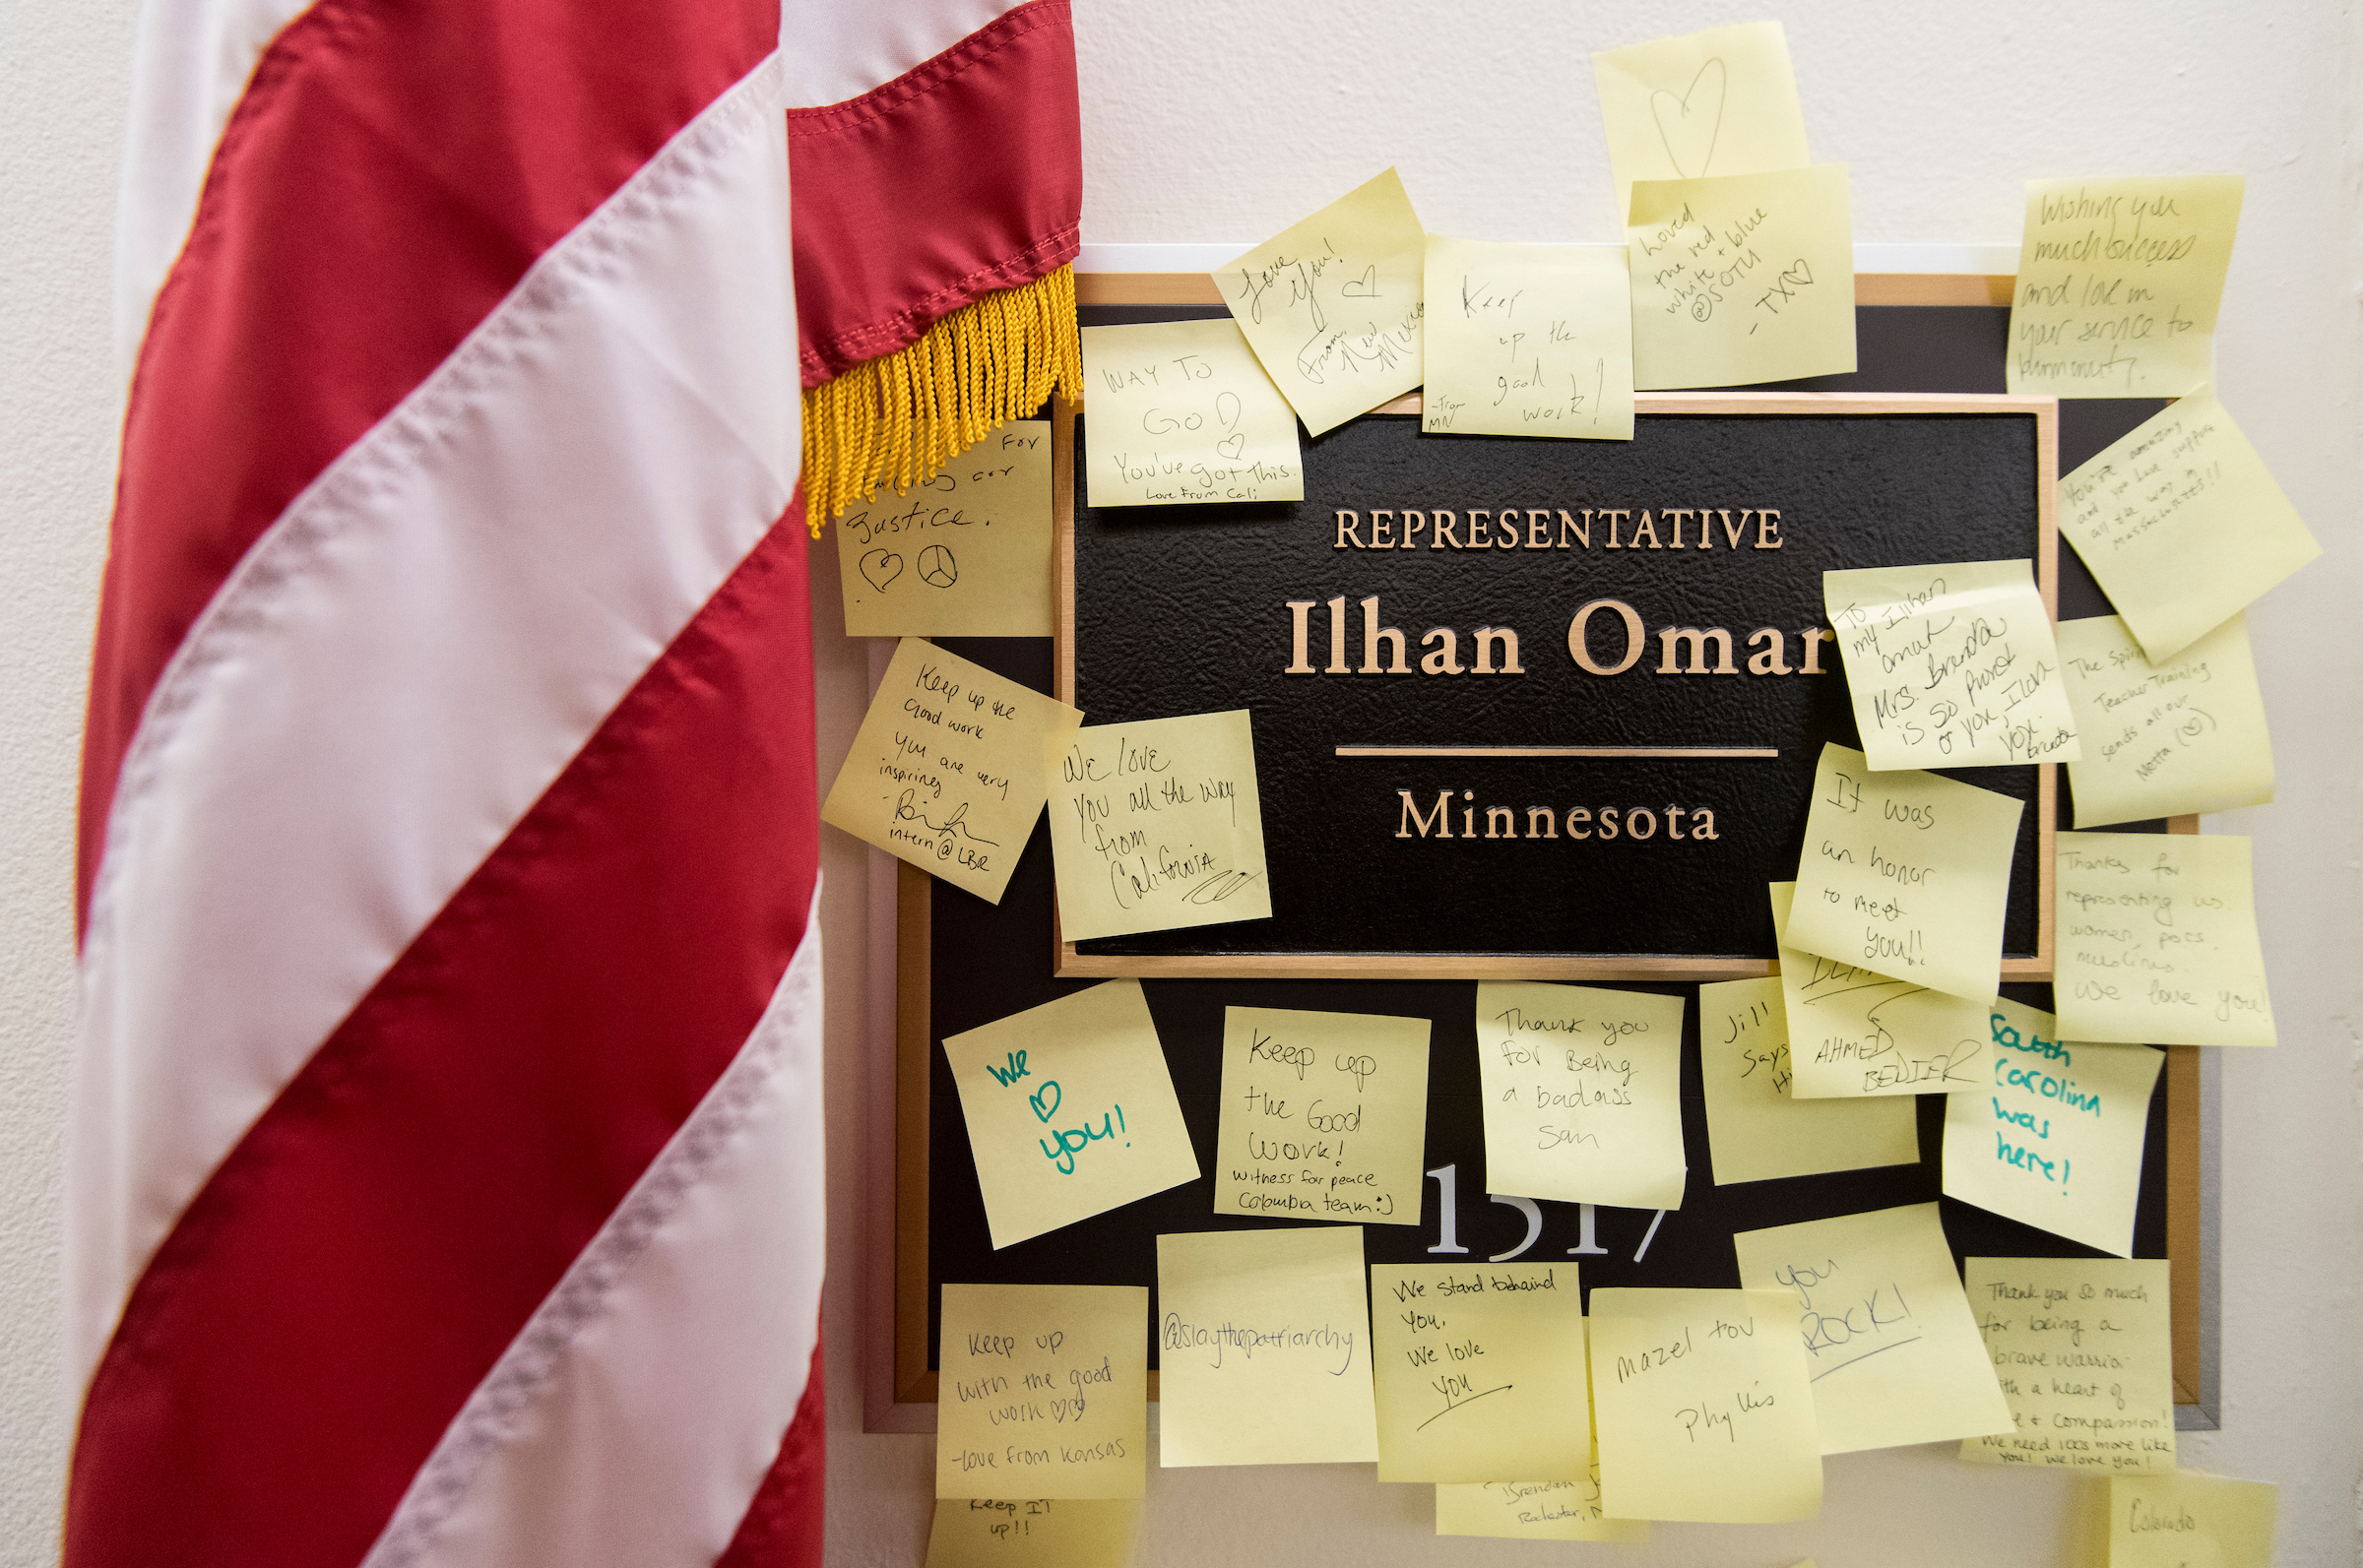 Post-It Notes with words of support are posted on the nameplate for Rep. Ilhan Omar, D-Minn., outside her office in the Longworth House Office Building on Monday, Feb. 11, 2019. (Bill Clark/CQ Roll Call)